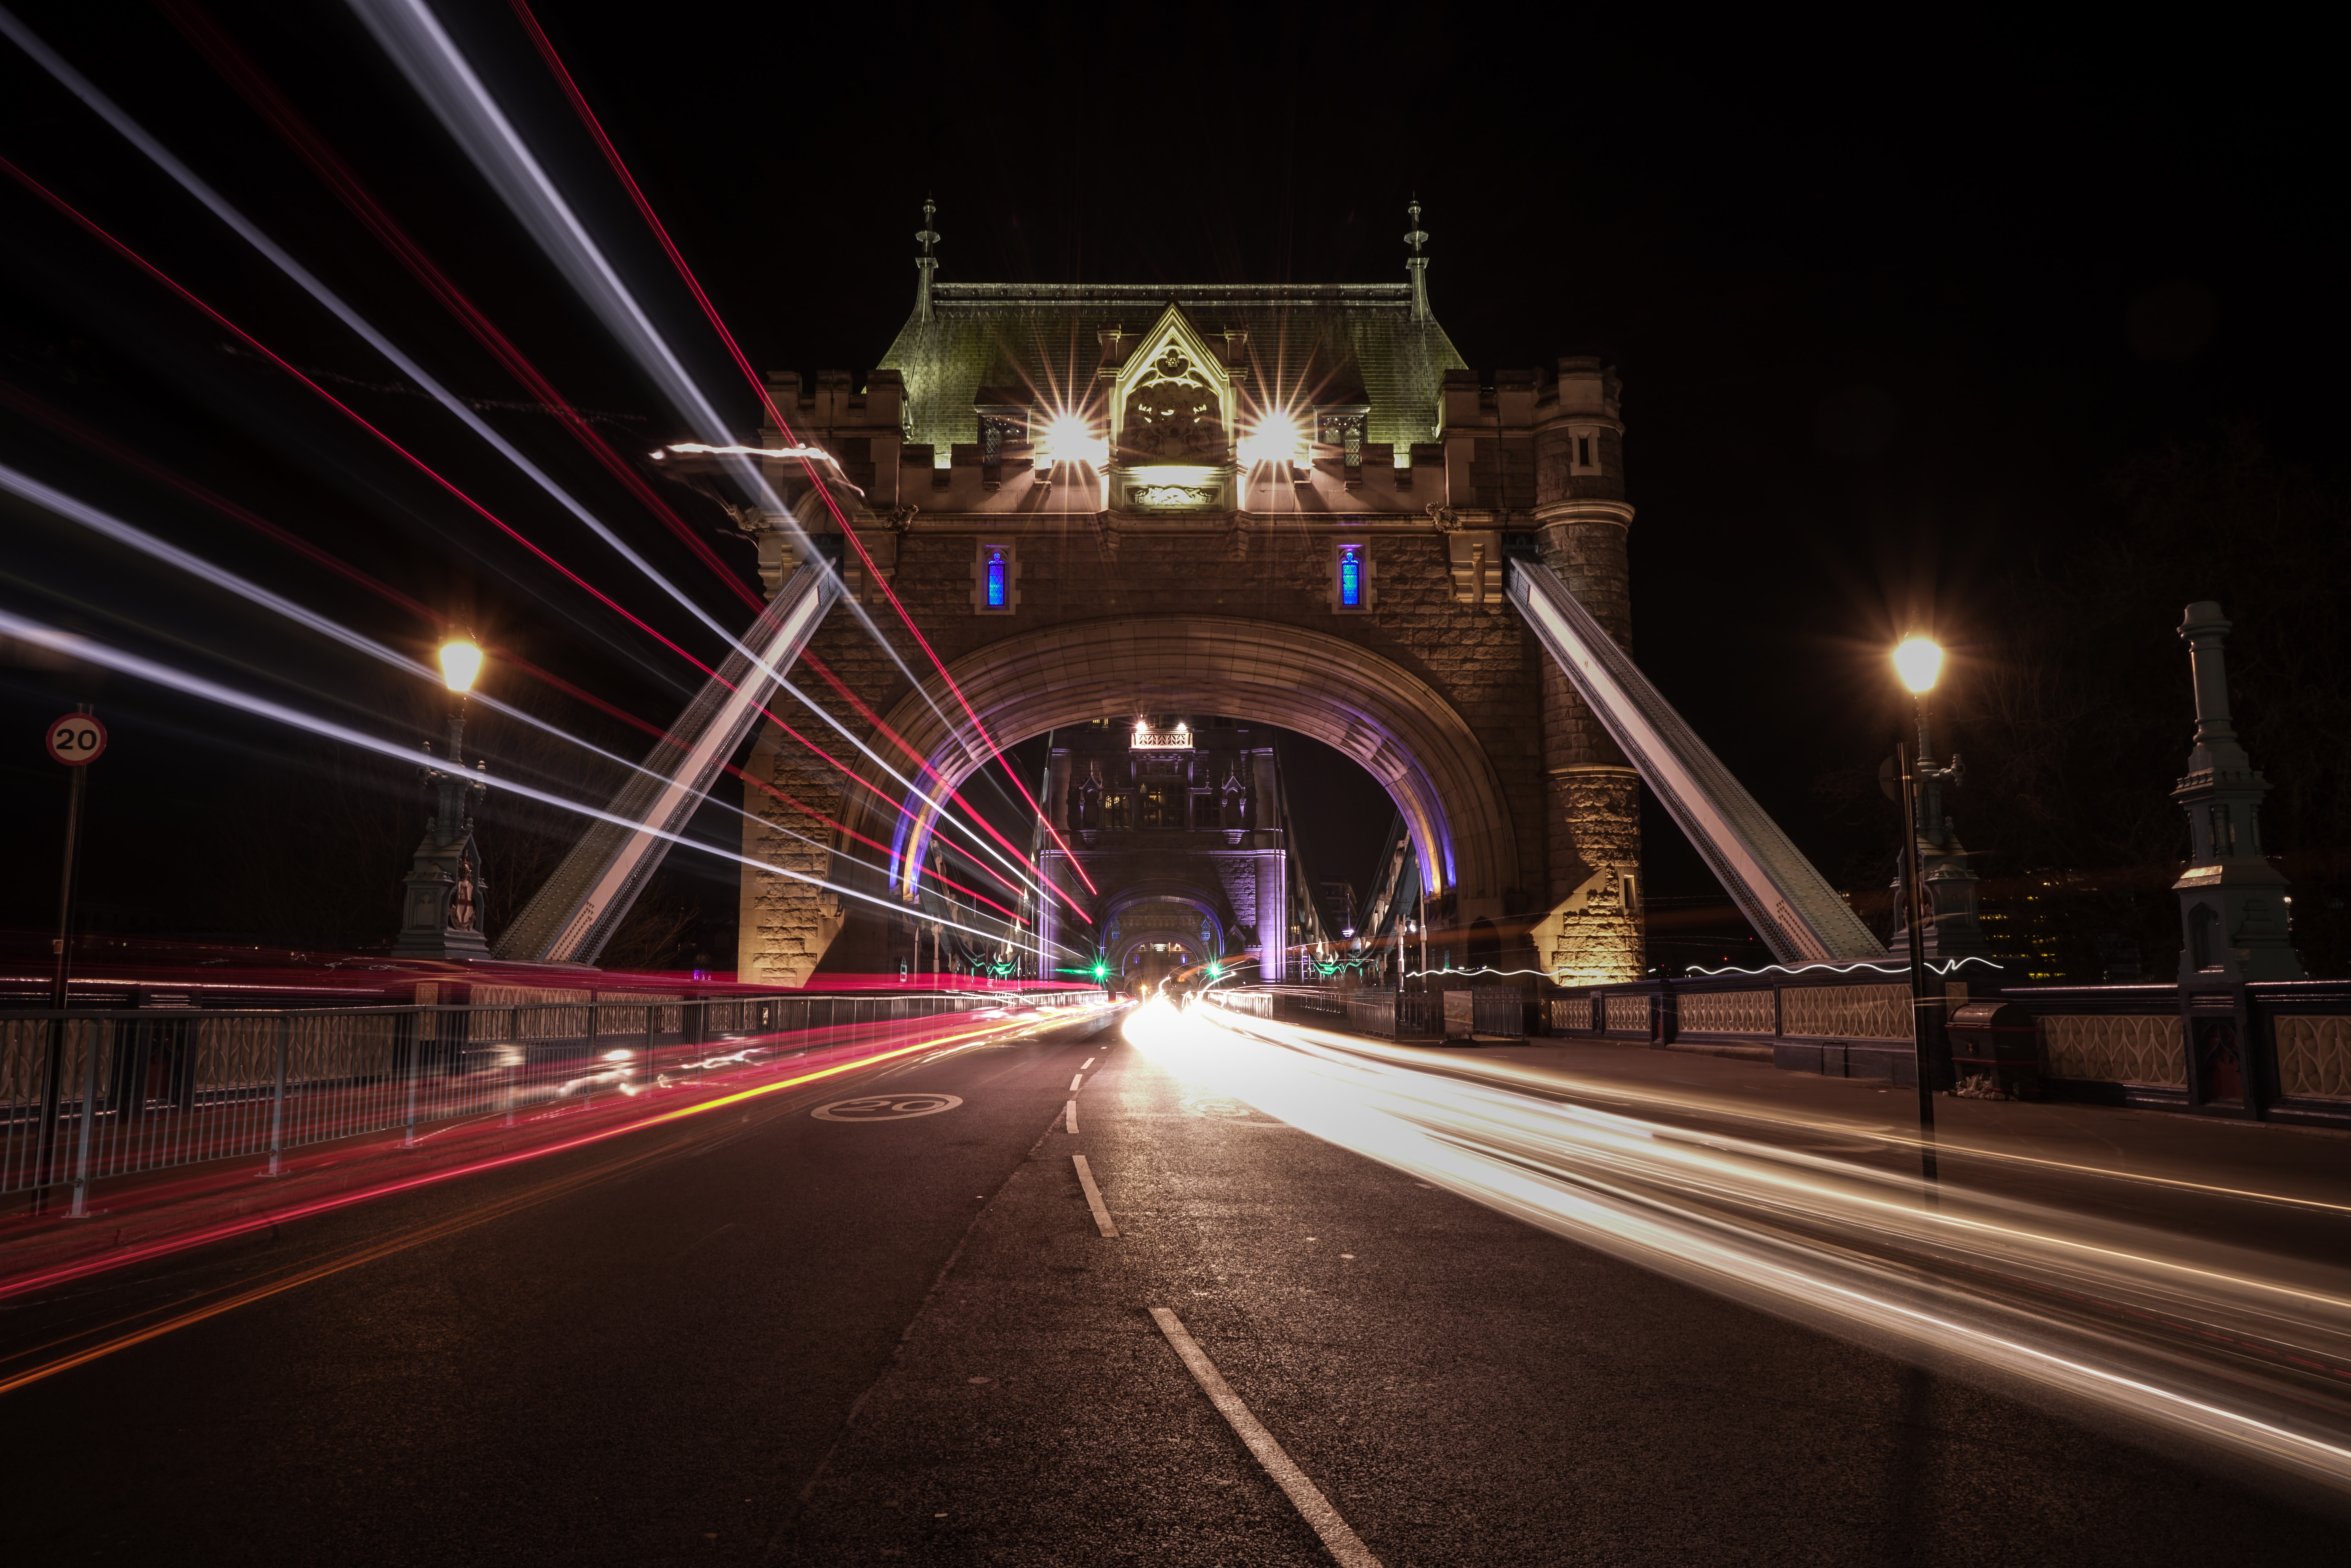 time lapse photography of suspension bridge at nighttime